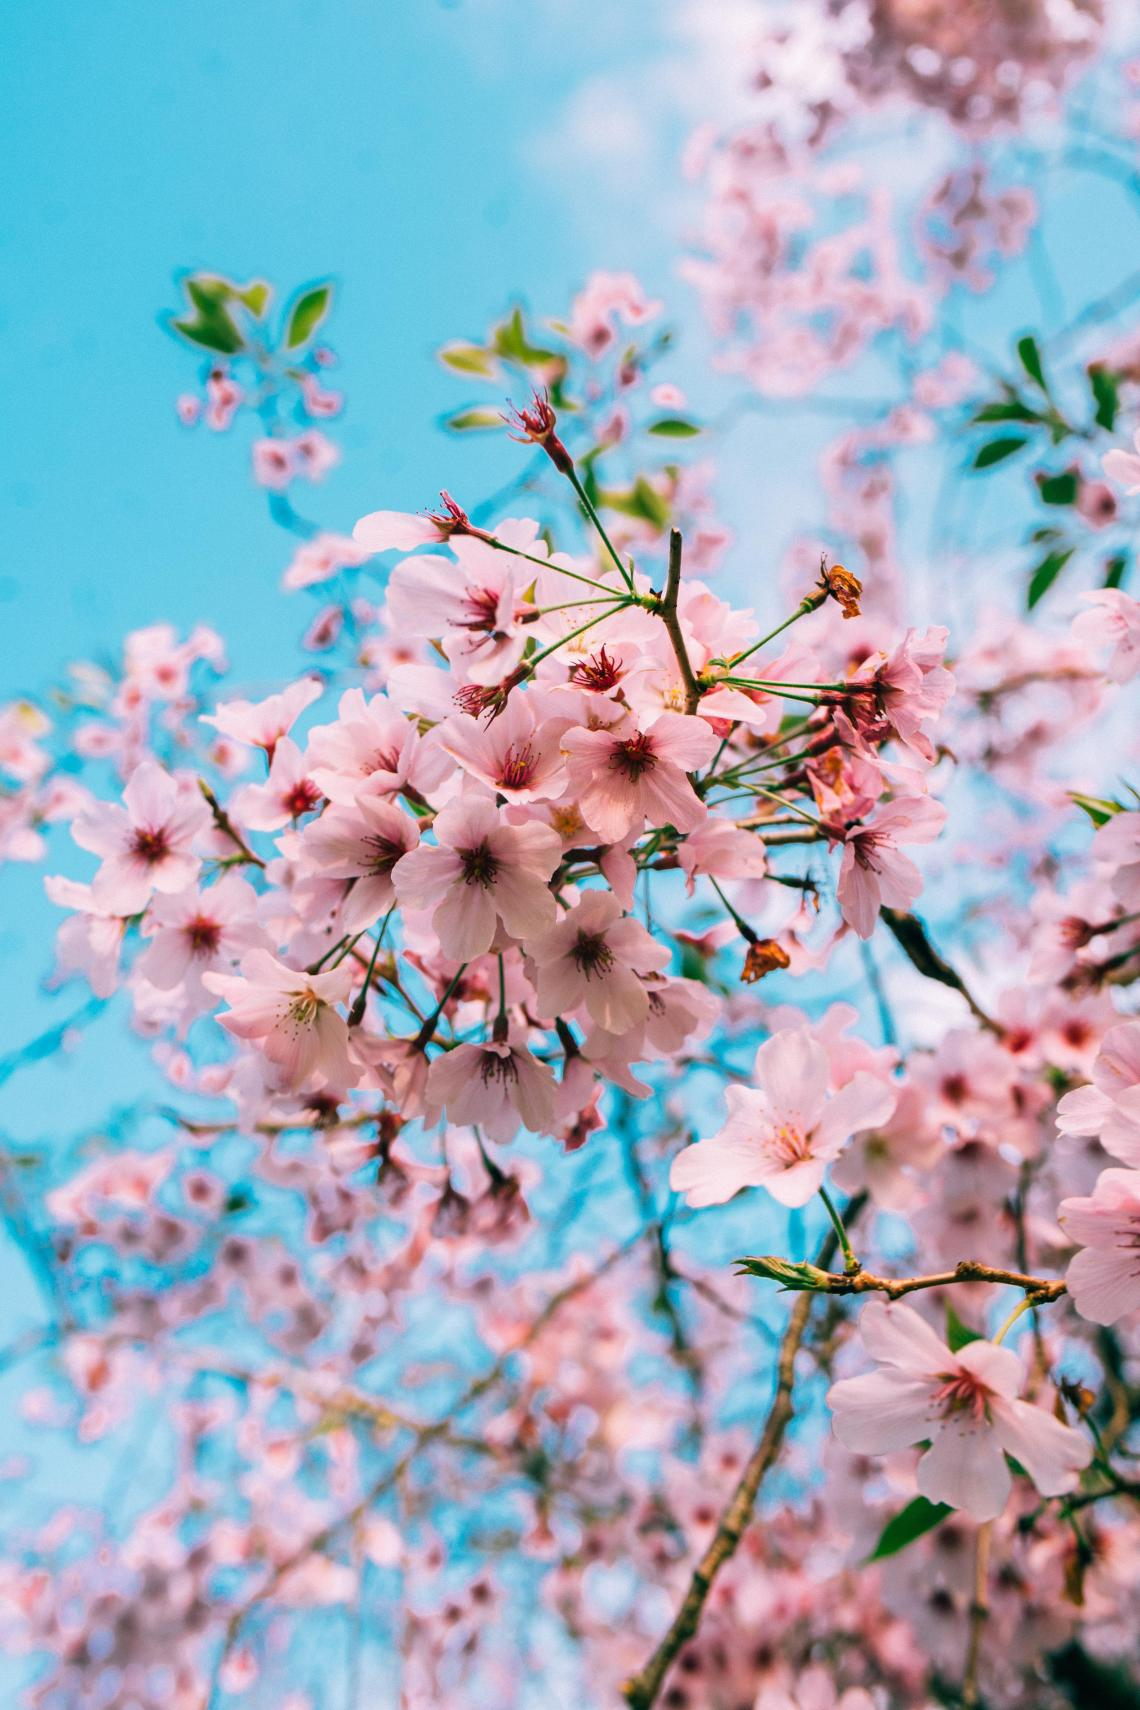 Aesthetic Cherry Blossom Wallpapers Wallpaper Cave